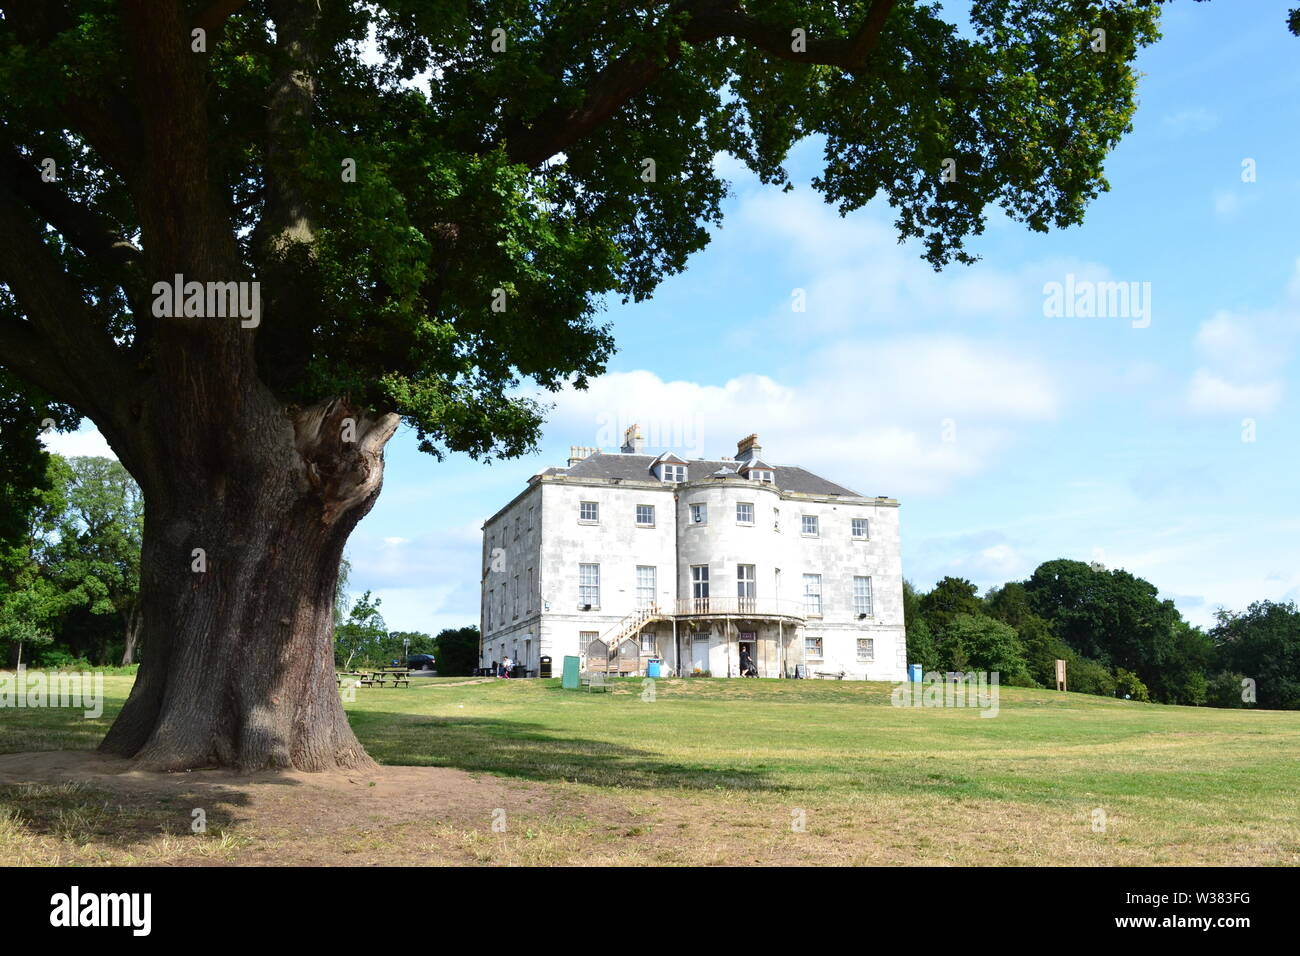 The reopened Beckenham Place Park with newly created 283m lake and beach, ancient woodlands, grasslands and mansion with bar, cafe and community rooms - Stock Image